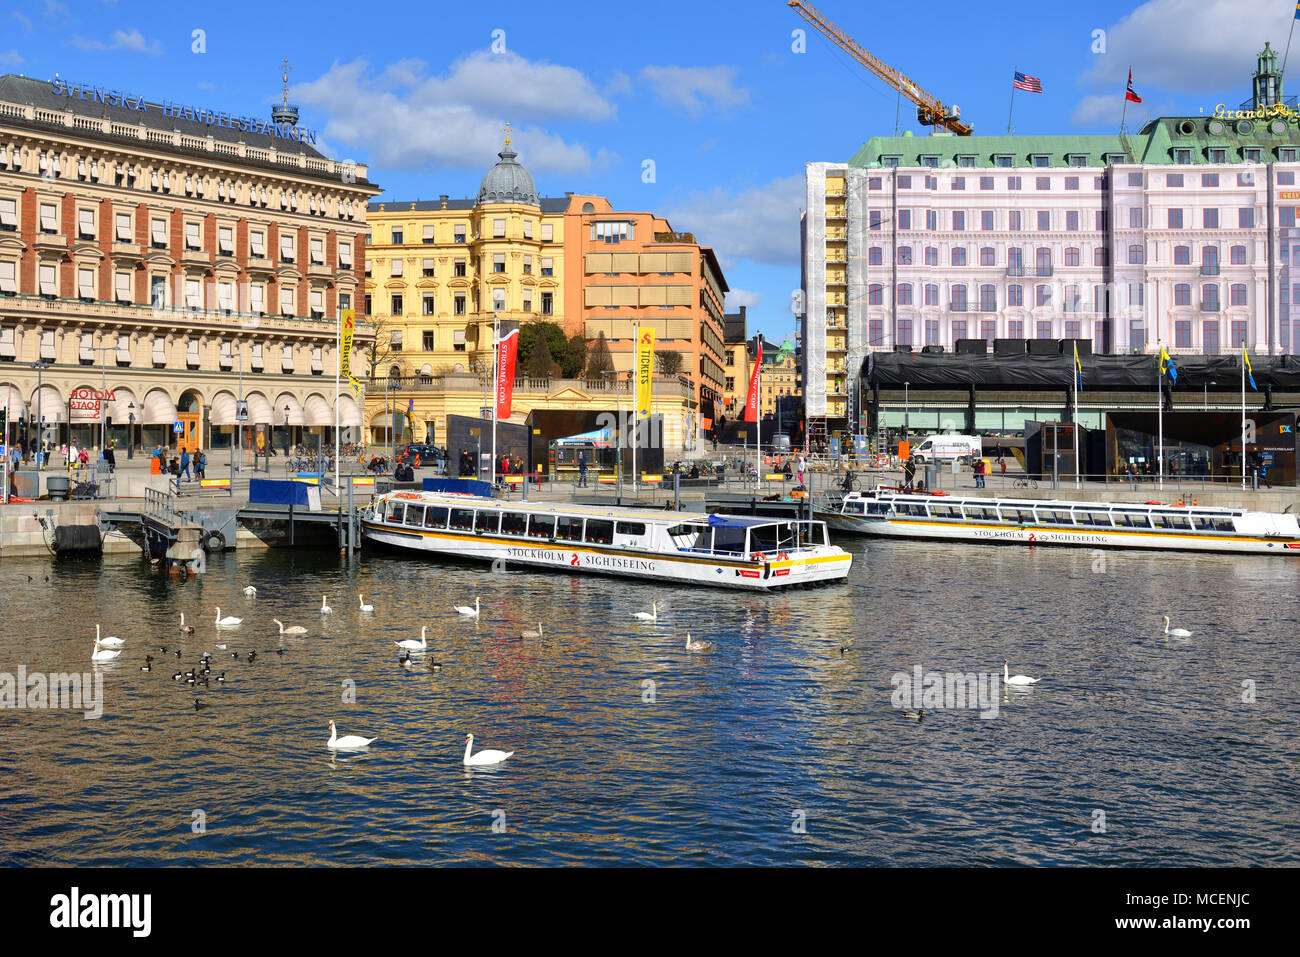 Harbor with tourist cruise ships - Stock Image